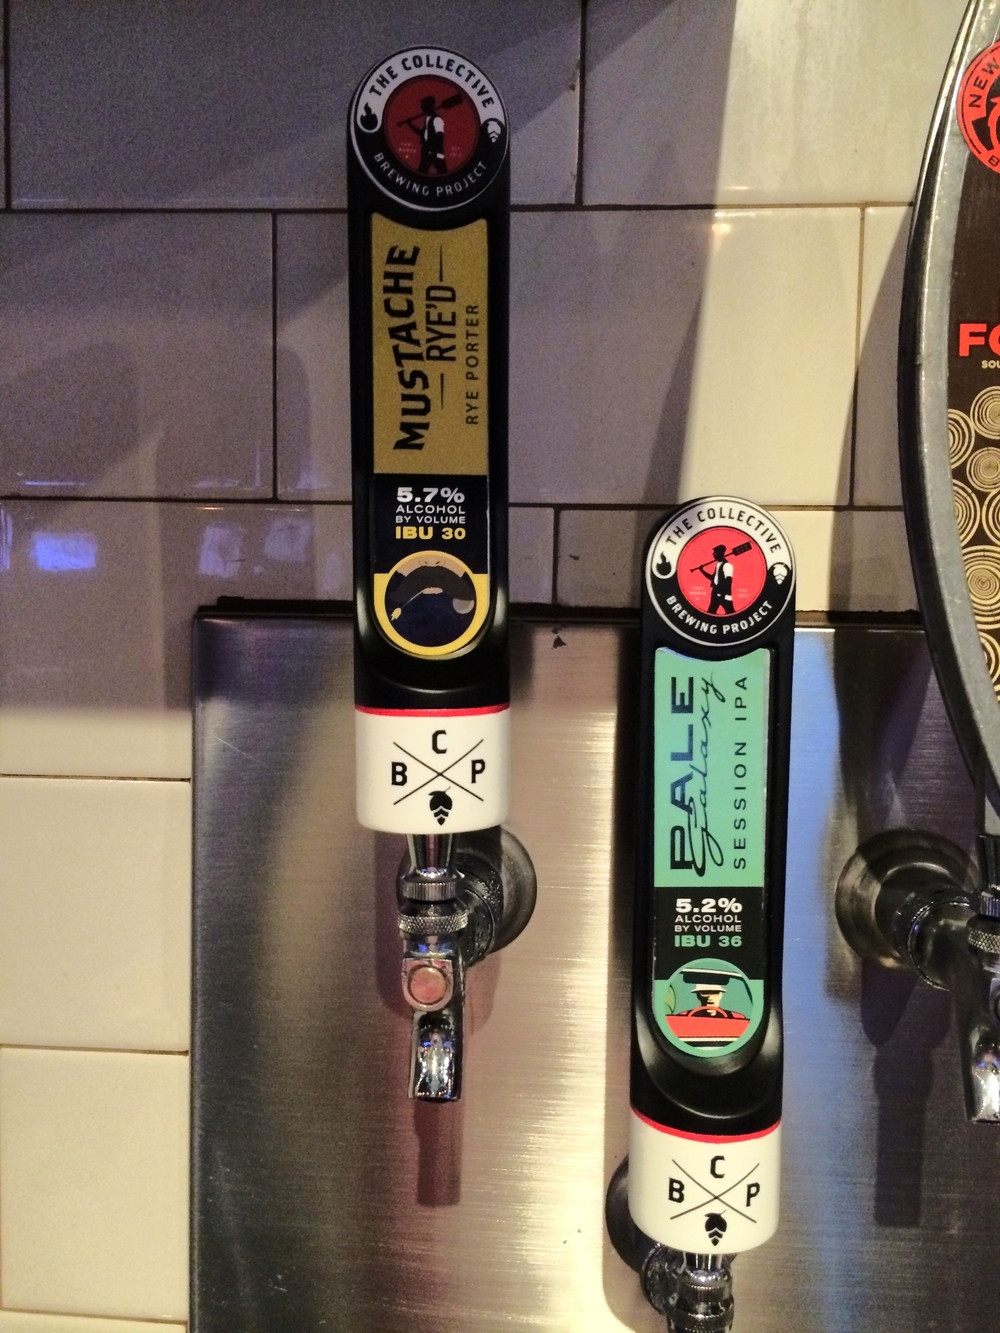 Our taps at The Pour House